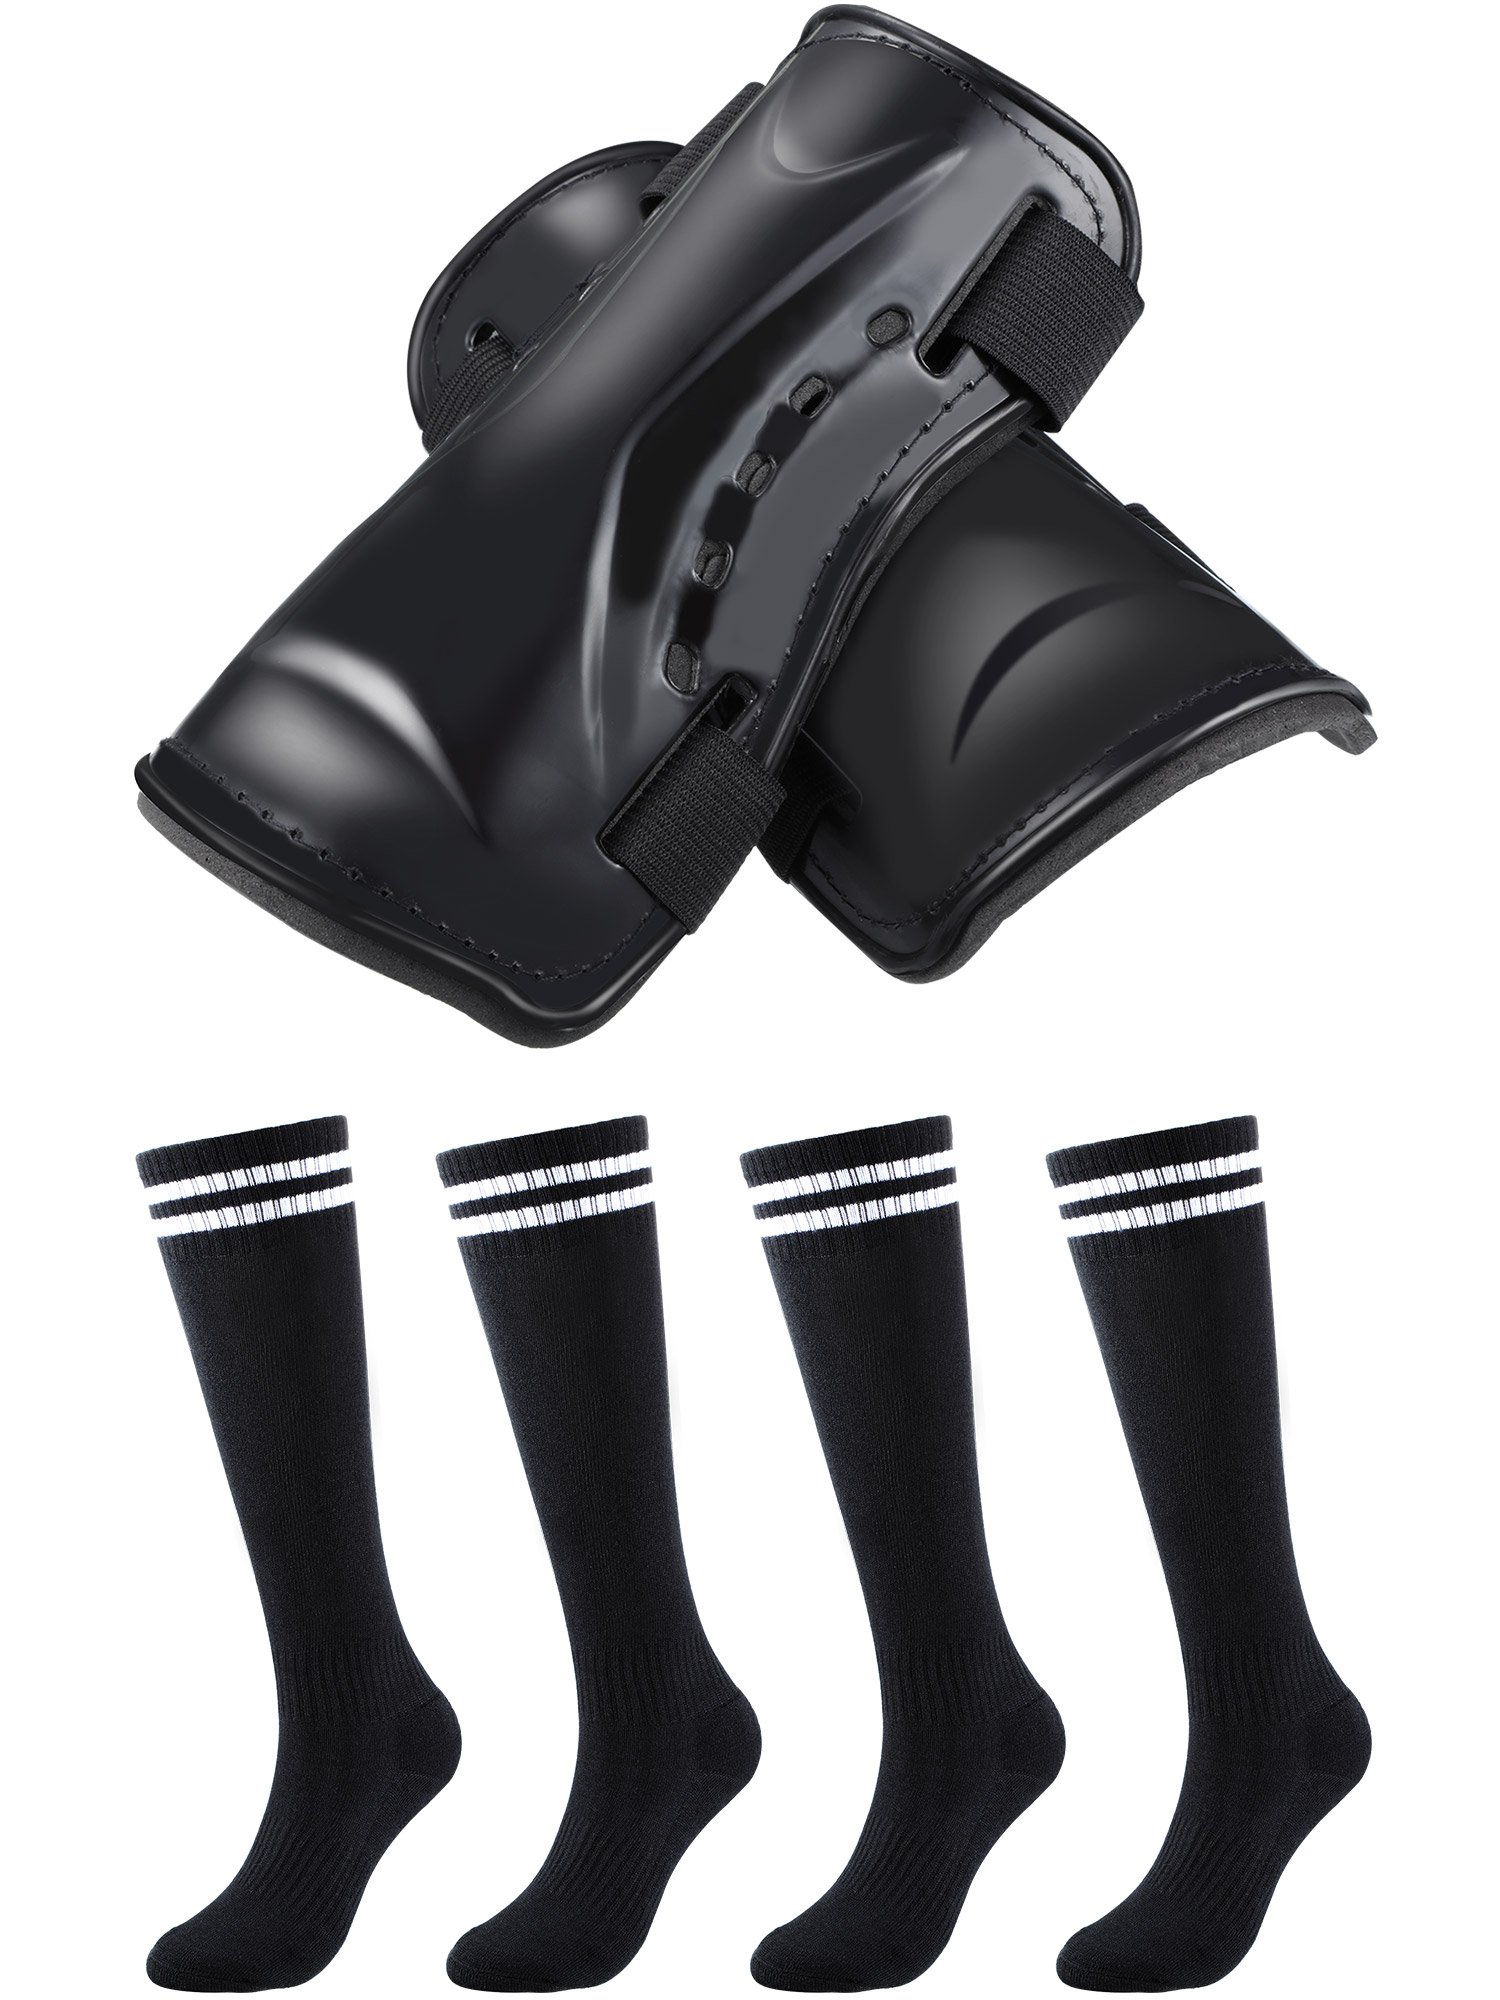 Maxdot 1 Pair Soccer Shin Guards Protective Gear and 2 Pairs Knee High Soccer Socks for Kids Teenagers Boys Girls, Black